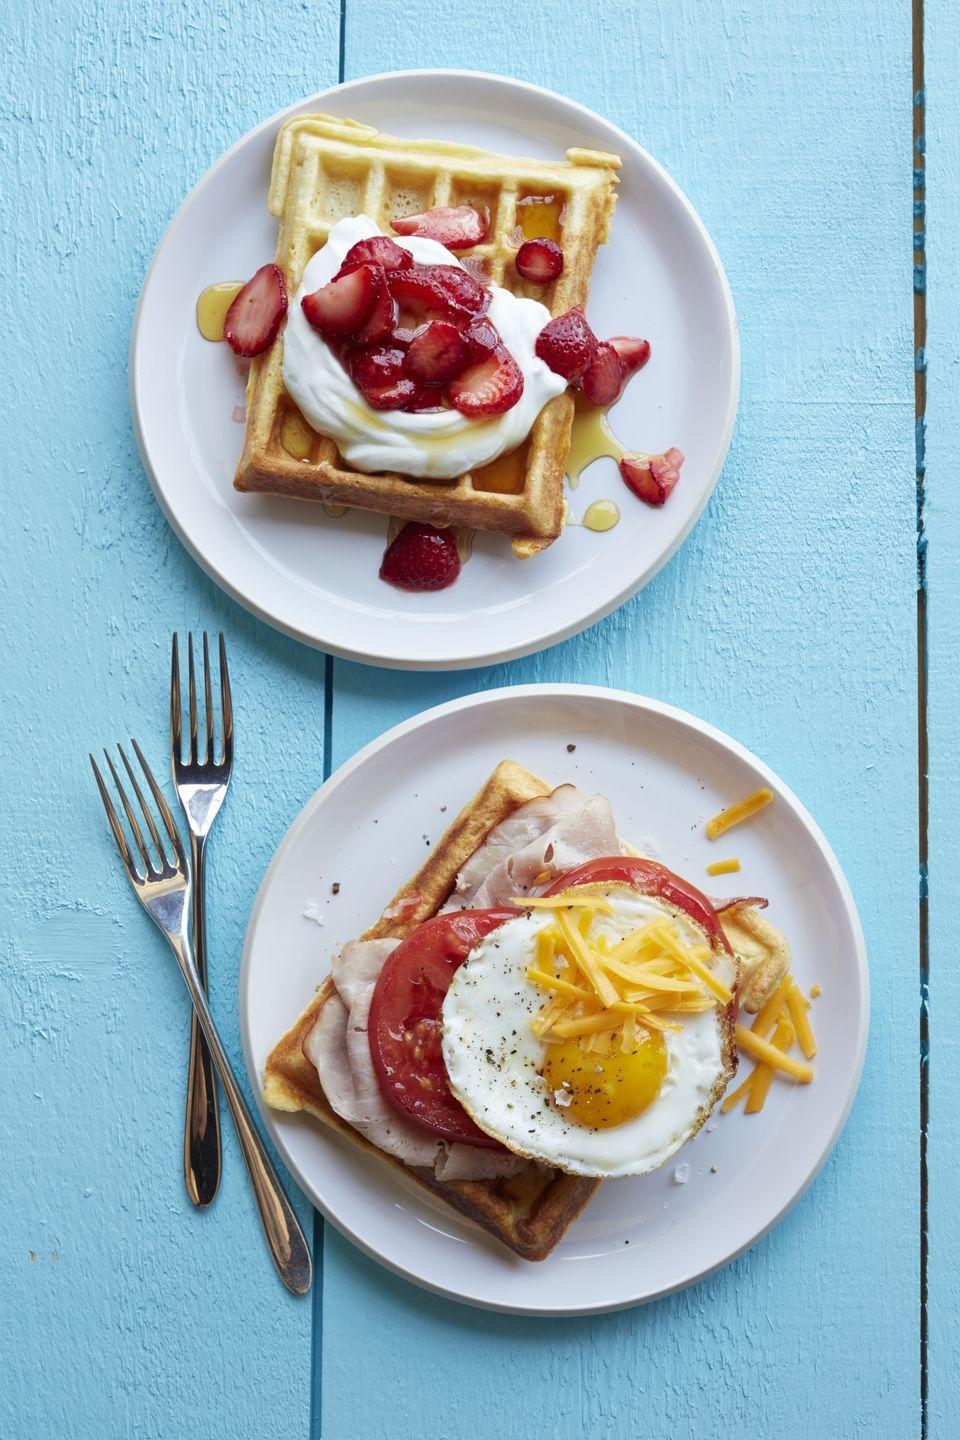 """<p>Trisha Yearwood's famous waffle recipe makes for an easy but impressive breakfast — top it with fruit, syrup, and yogurt if your mom has a sweet tooth, or pile on ham, cheddar, and eggs for a savory twist. </p><p><strong><em><a href=""""https://www.womansday.com/food-recipes/food-drinks/recipes/a12870/mamas-homemade-waffles-recipe-wdy0914/"""" rel=""""nofollow noopener"""" target=""""_blank"""" data-ylk=""""slk:Get the Mama's Homemade Waffles recipe."""" class=""""link rapid-noclick-resp"""">Get the Mama's Homemade Waffles recipe.</a></em></strong></p>"""